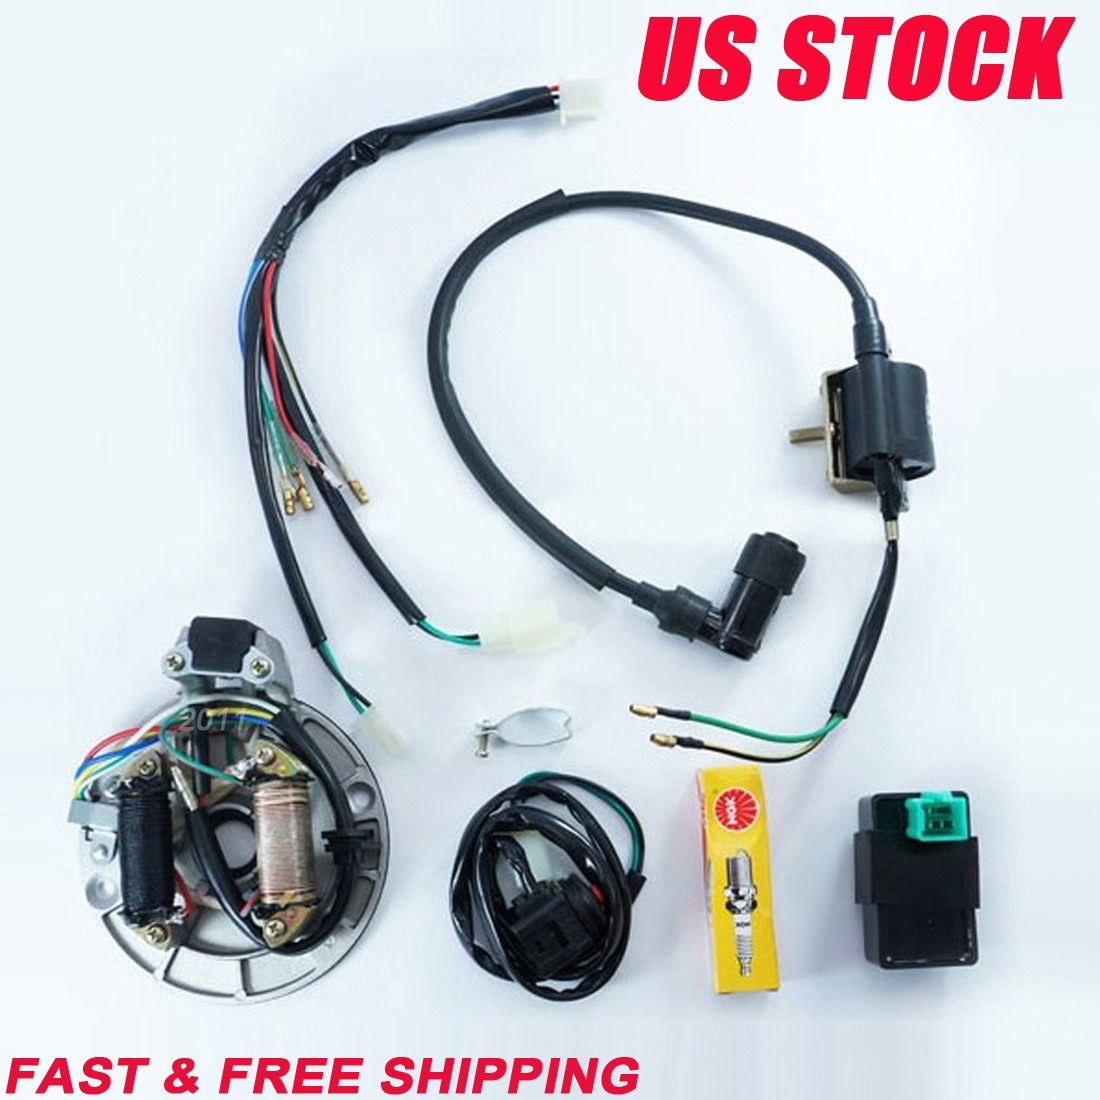 all electrics cc wire harness cdi coil stator all electrics 50 110 125cc 140 wire harness cdi coil stator magneto dirt bike a2